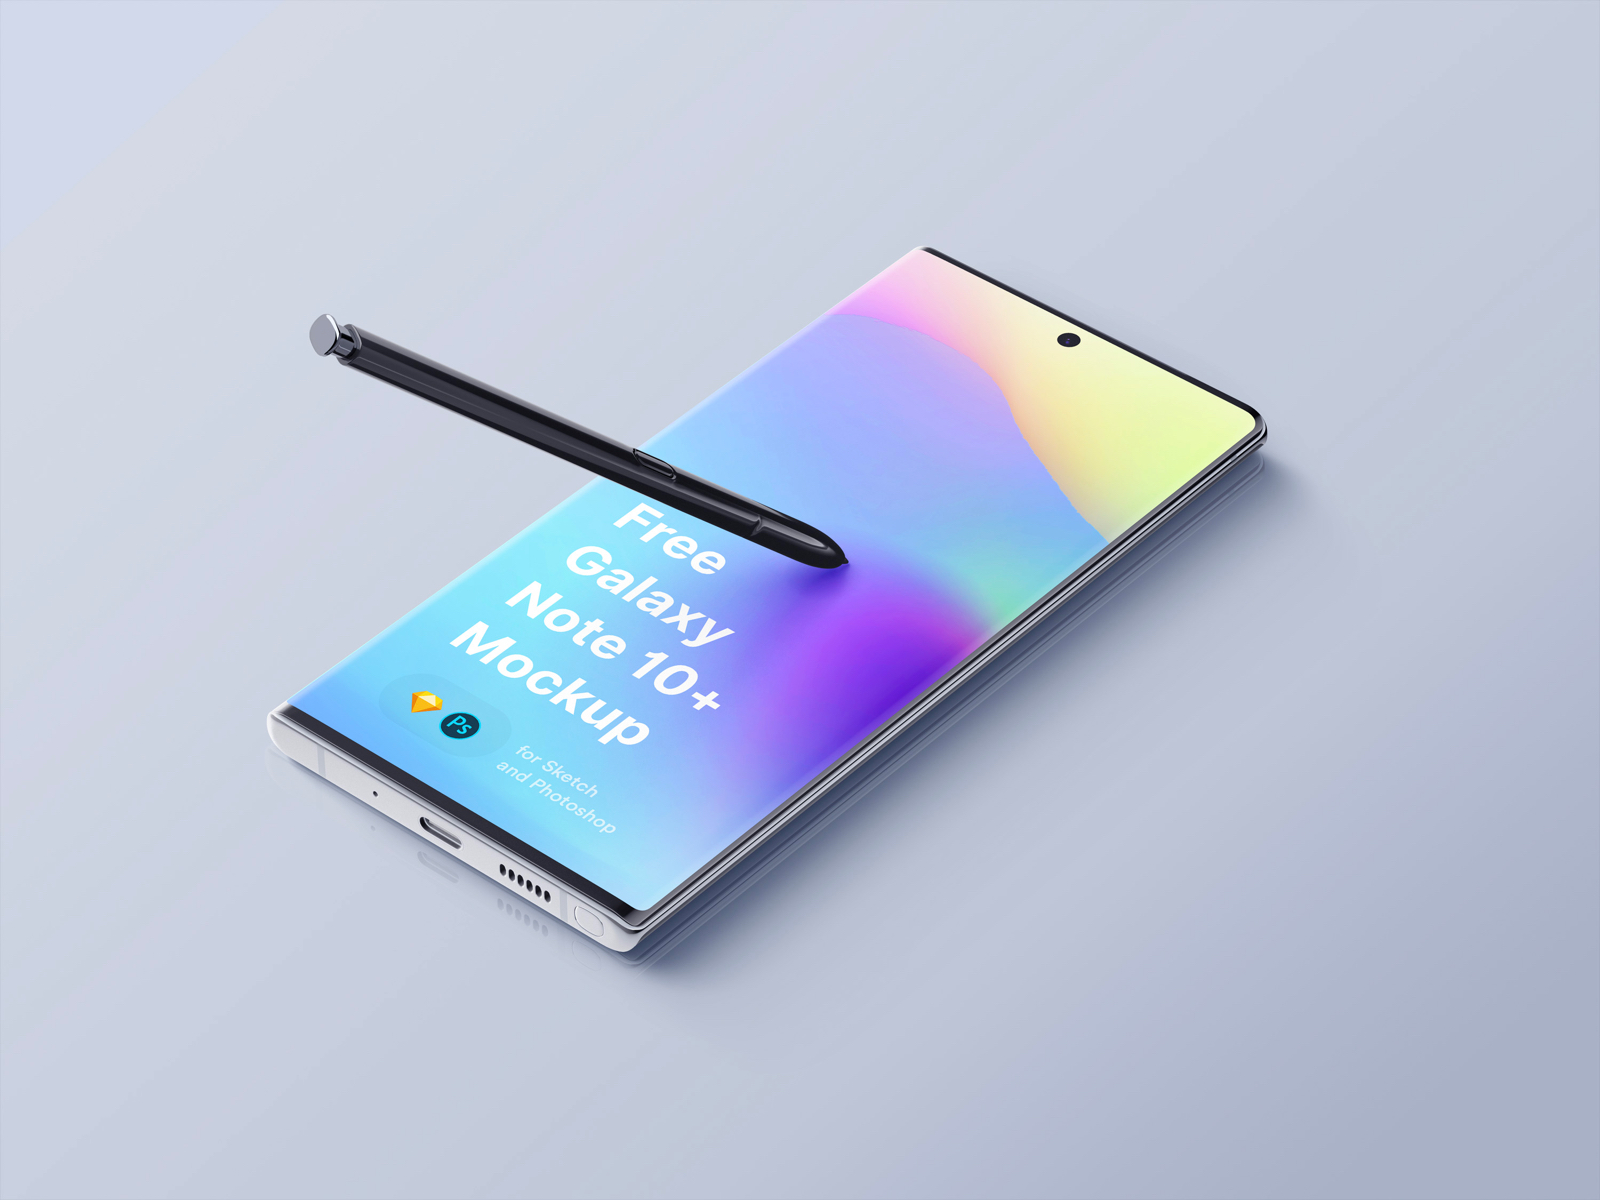 Samsung Galaxy Note 10 Plus Mockup - Download free Samsung Galaxy Note Plus Mockup. For your personal and commercial projects. In thee different variations and isolated pen. Clay versions also included.